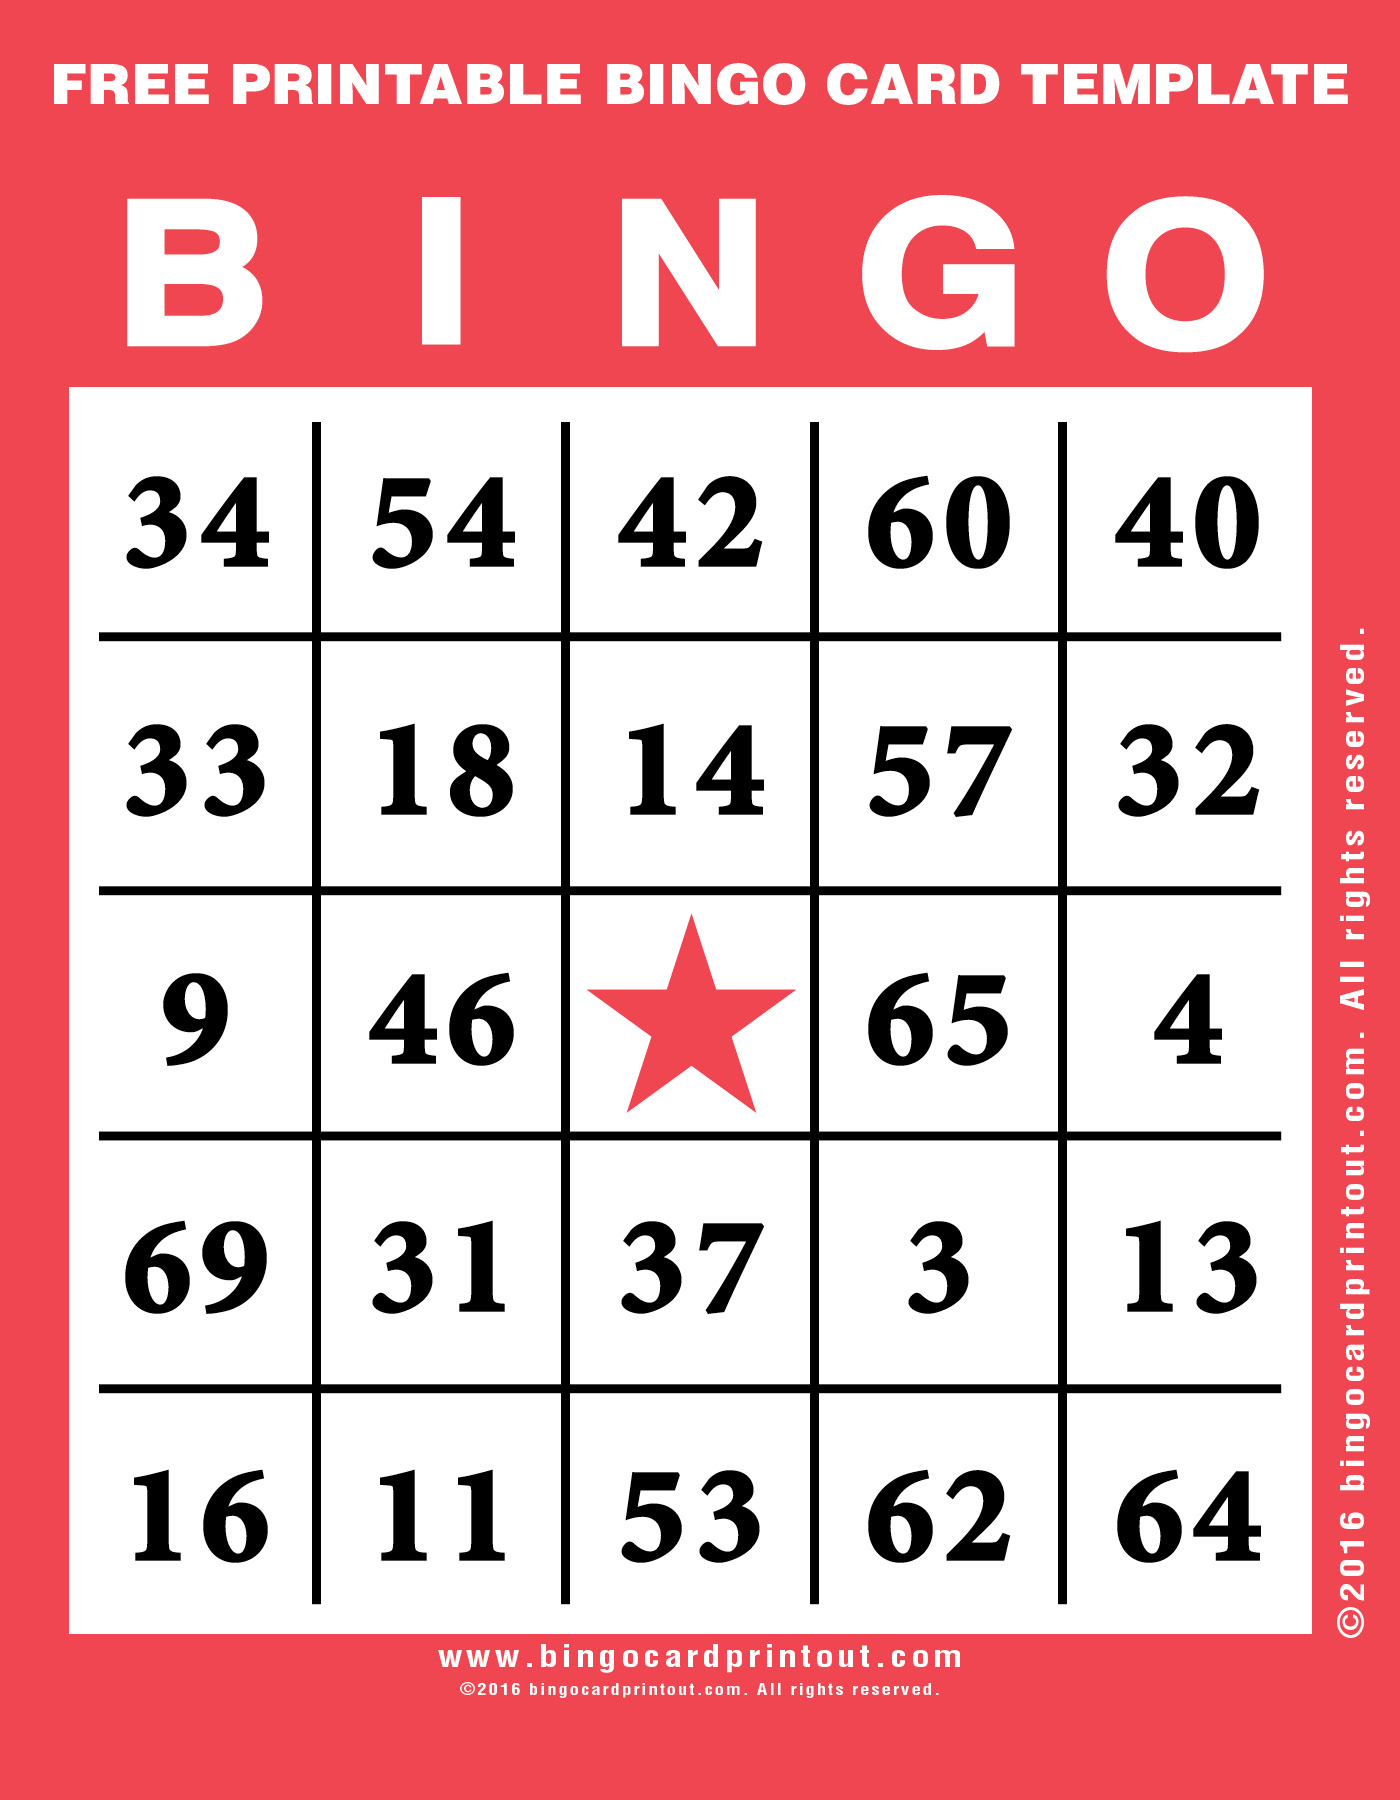 Free Printable Bingo Card Template - Bingocardprintout - Printable Bingo Template Free